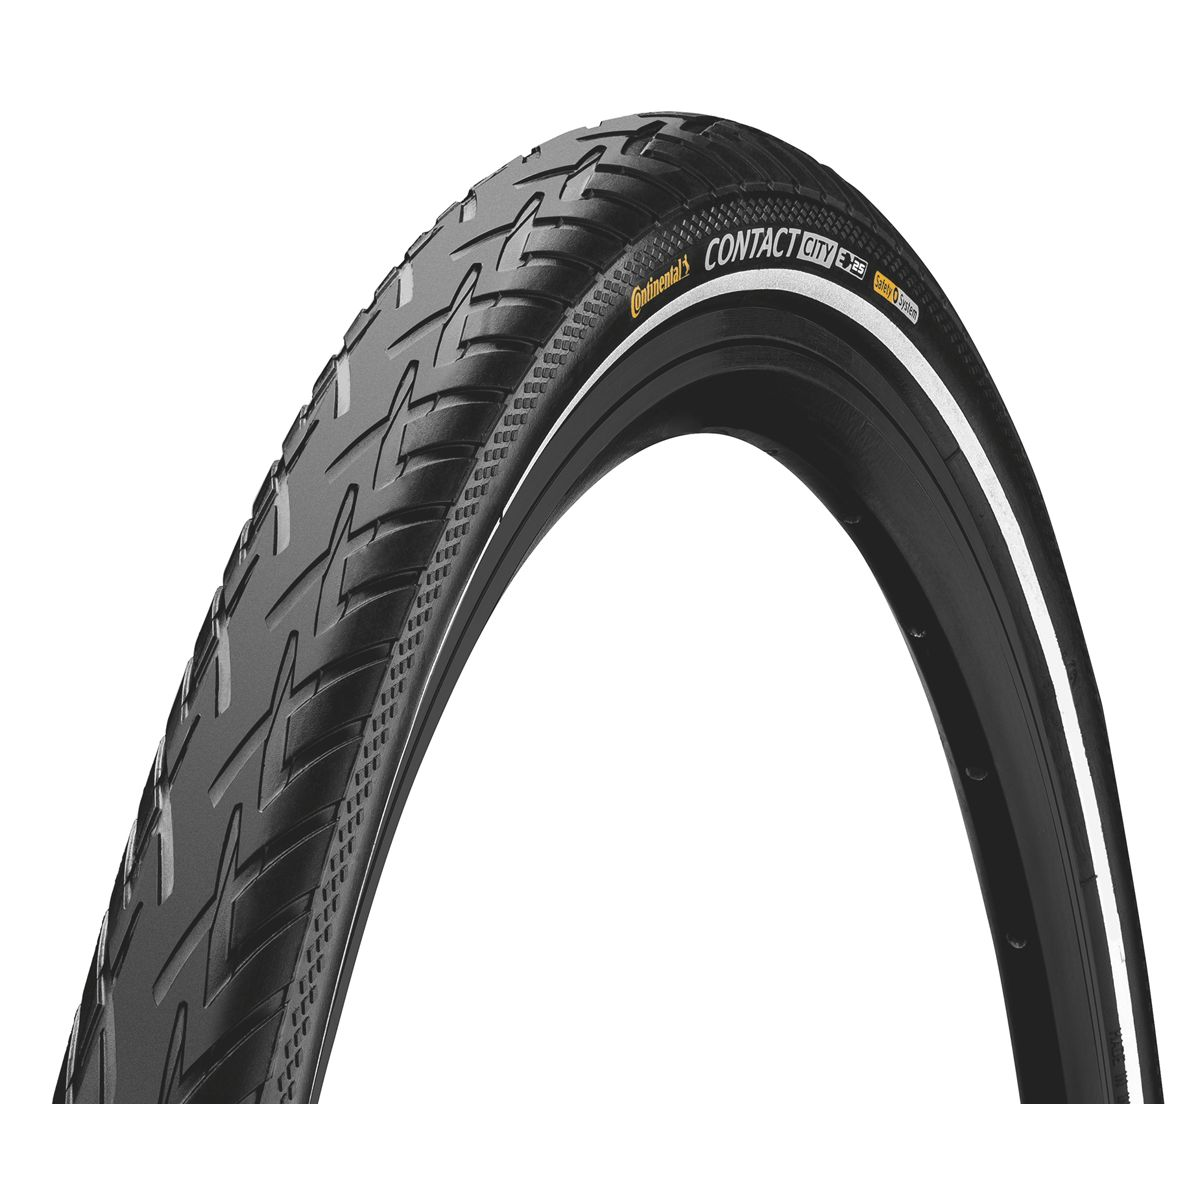 Contact City Reflex touring tyre